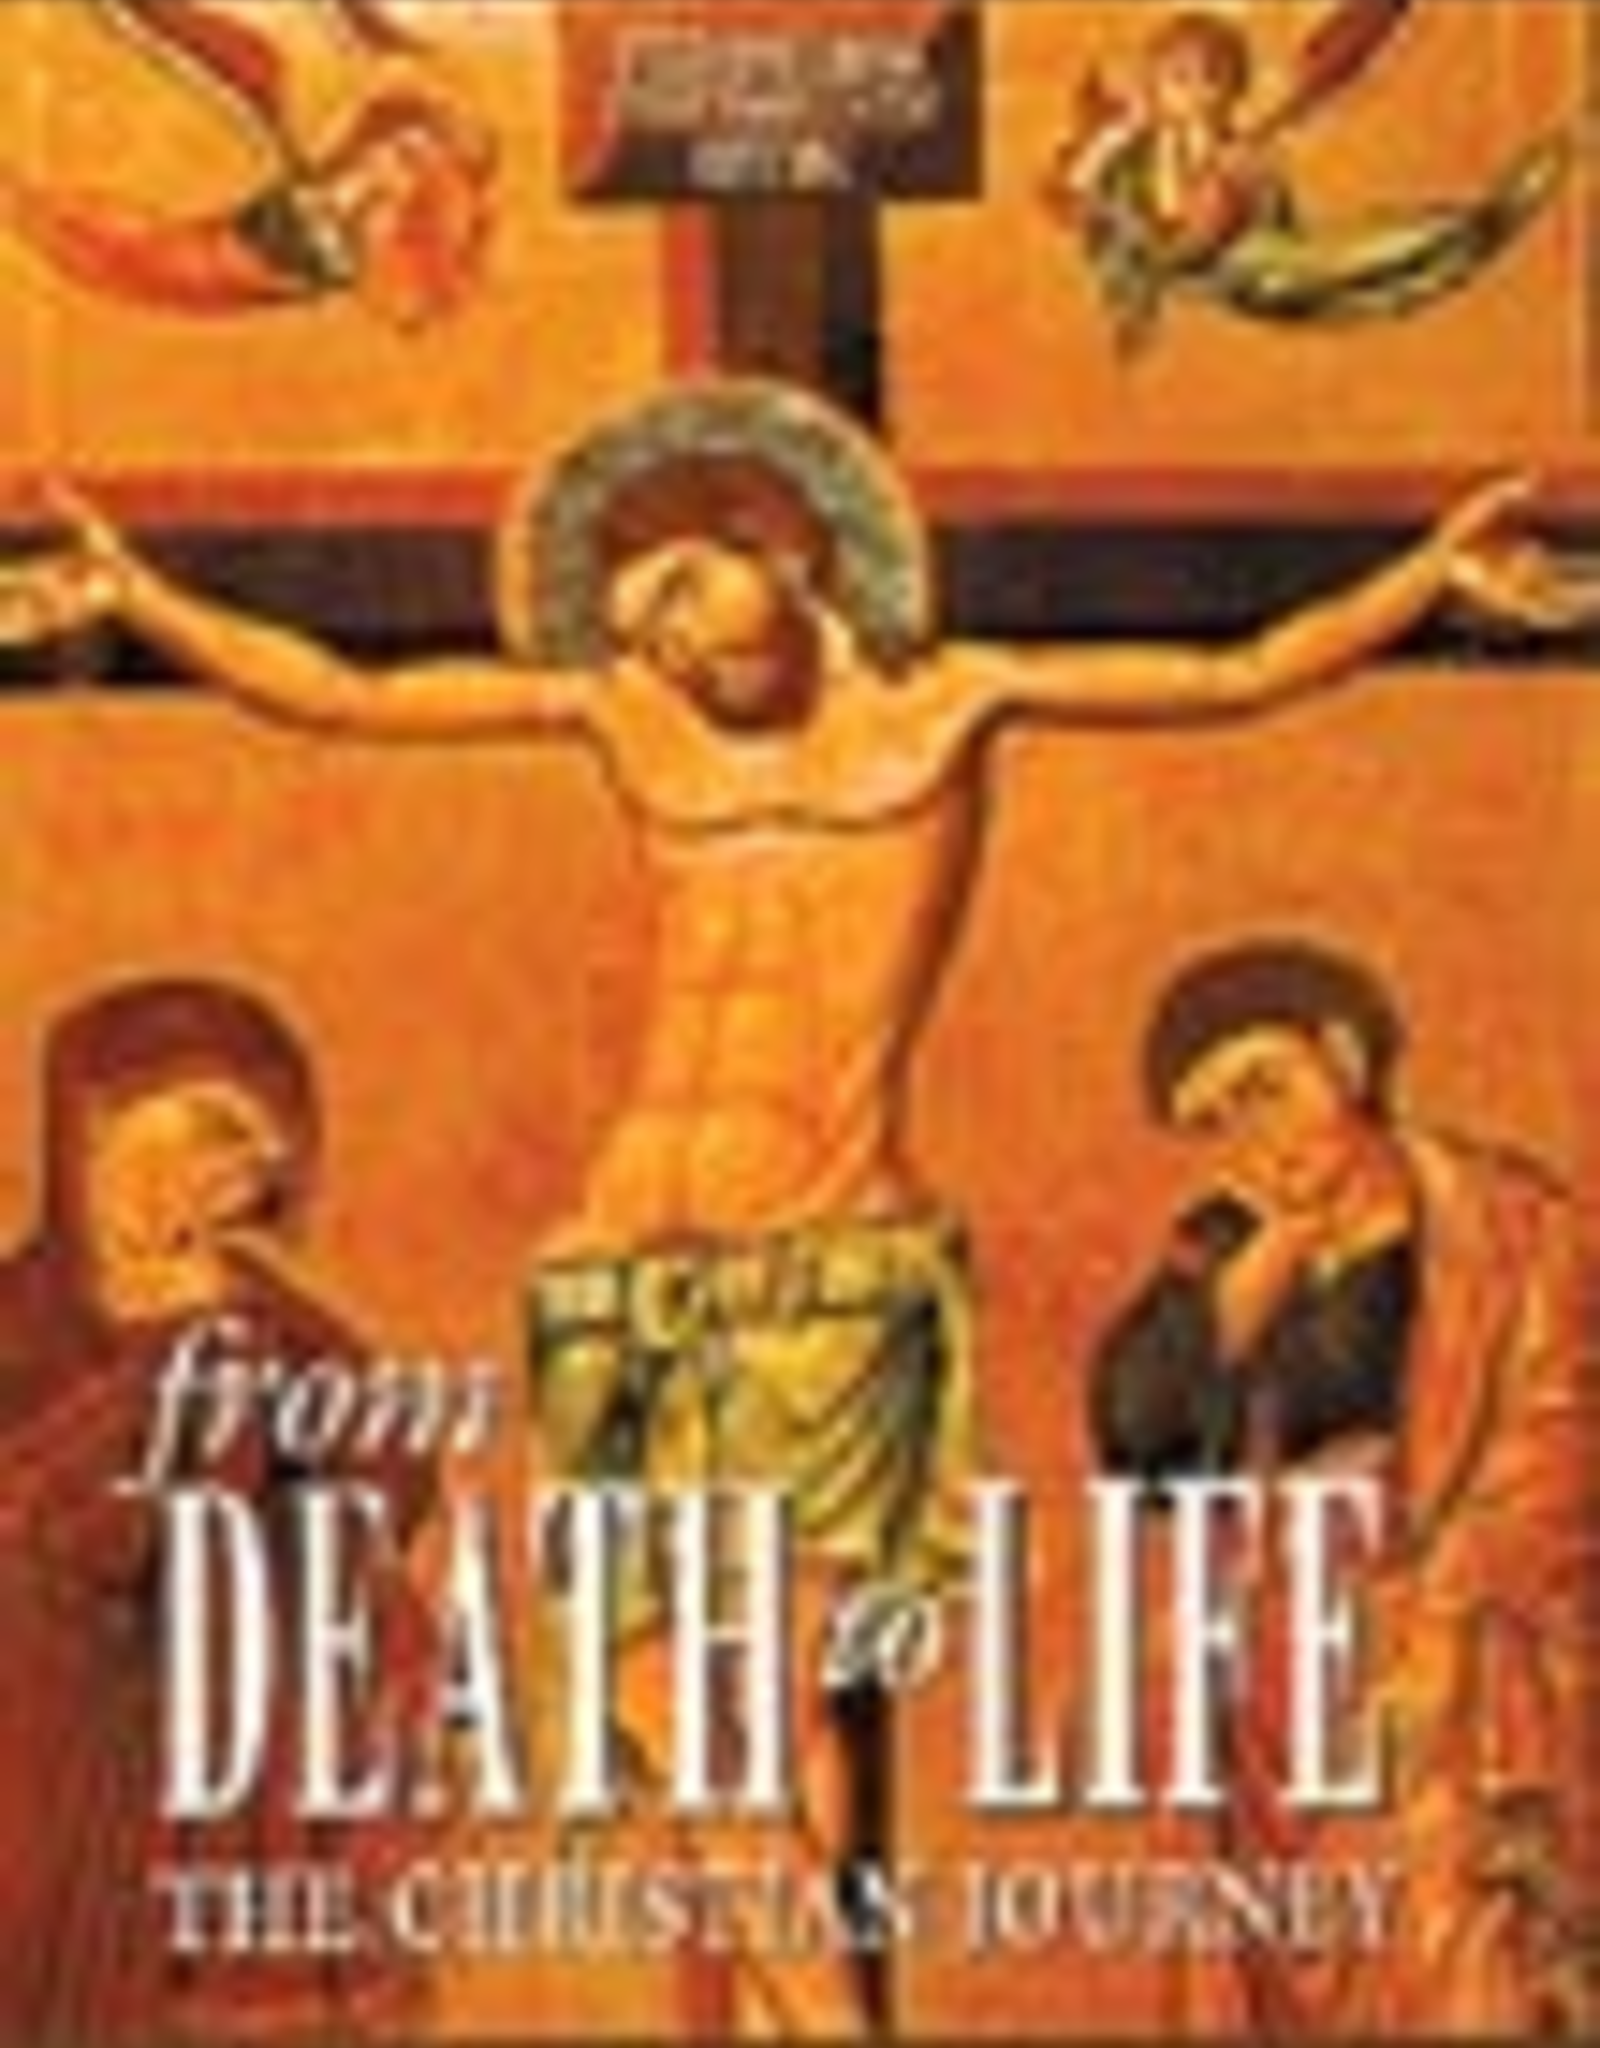 Ignatius Press From Death to Life:  The Christian Journey, by Cristtoph Cardinal Schoenborn (paperback)